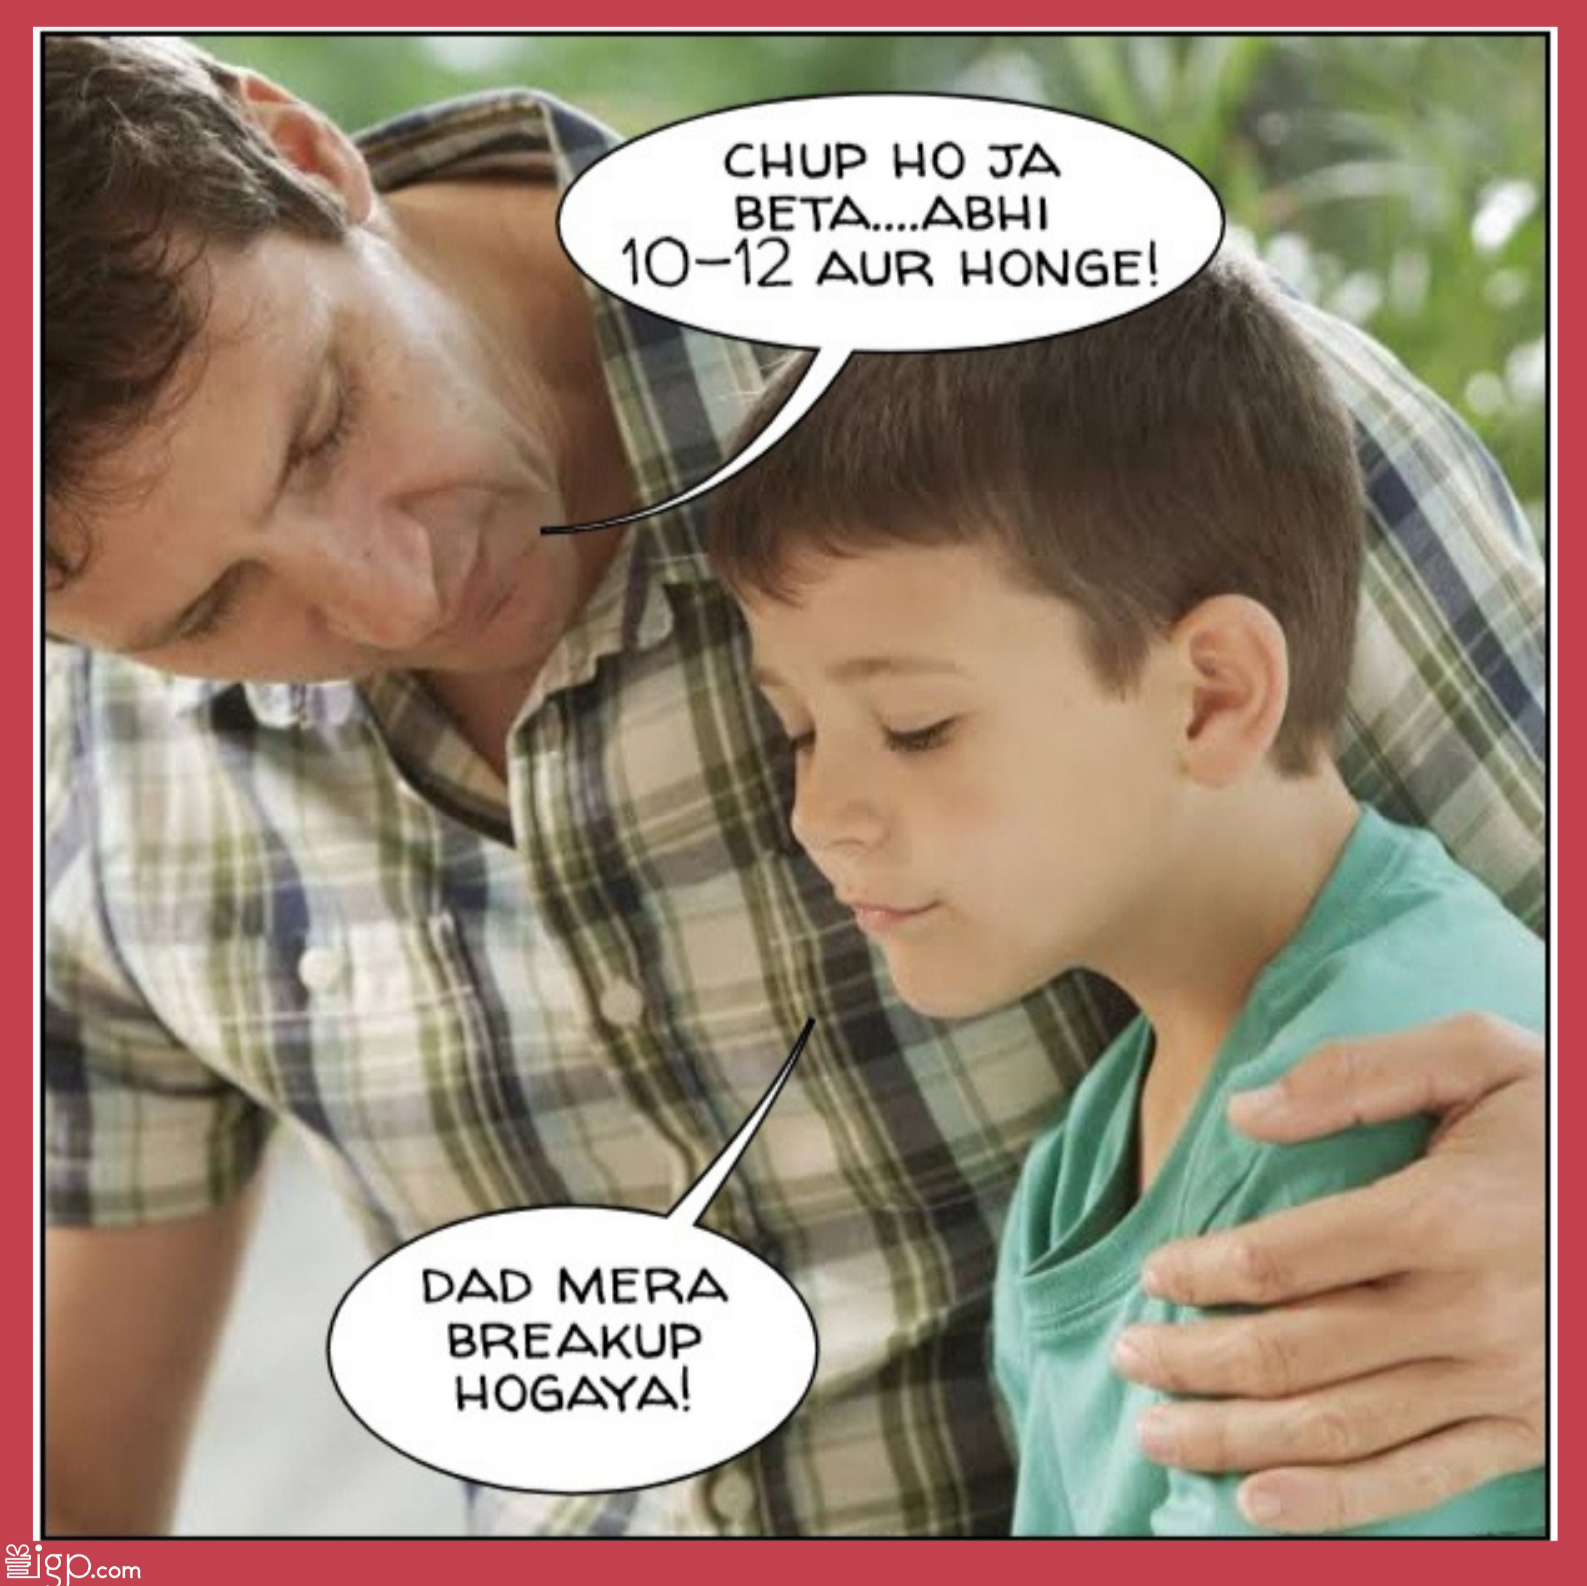 Dad consoling son